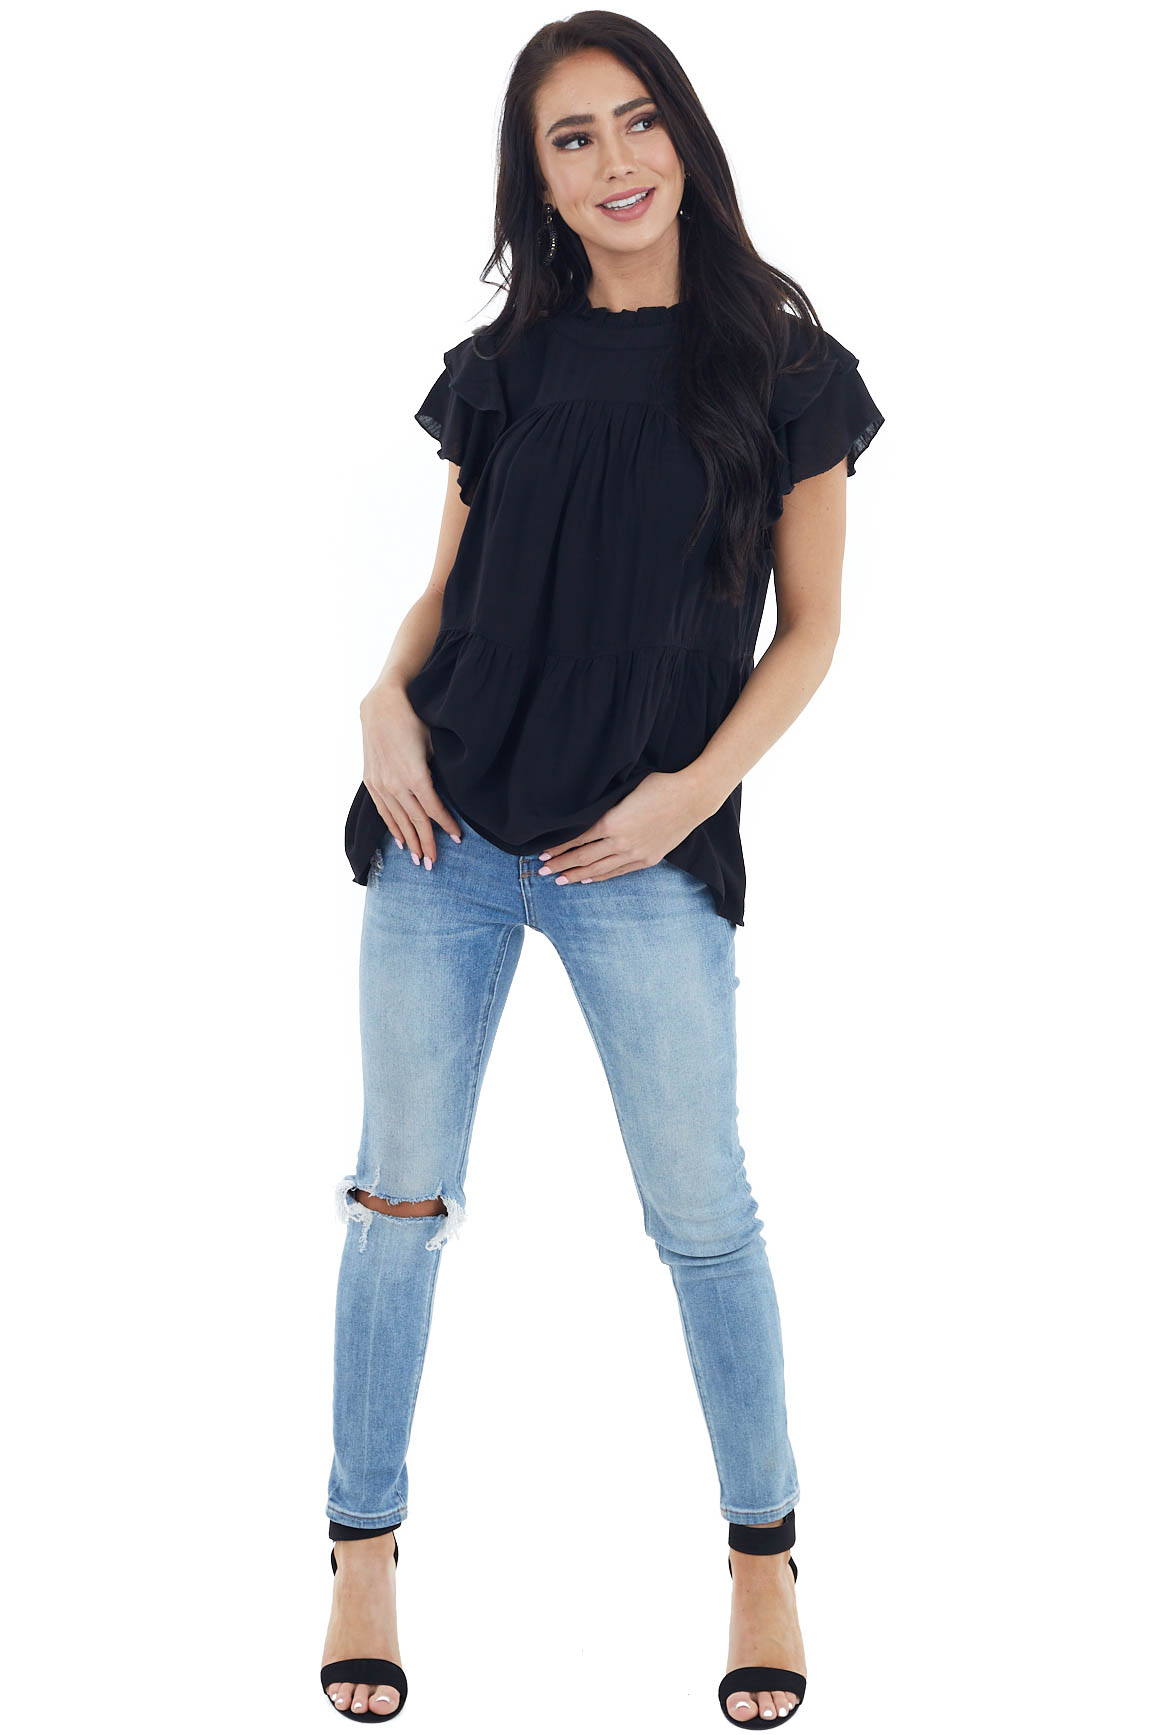 Black High Neck Top with Double Ruffled Short Sleeves